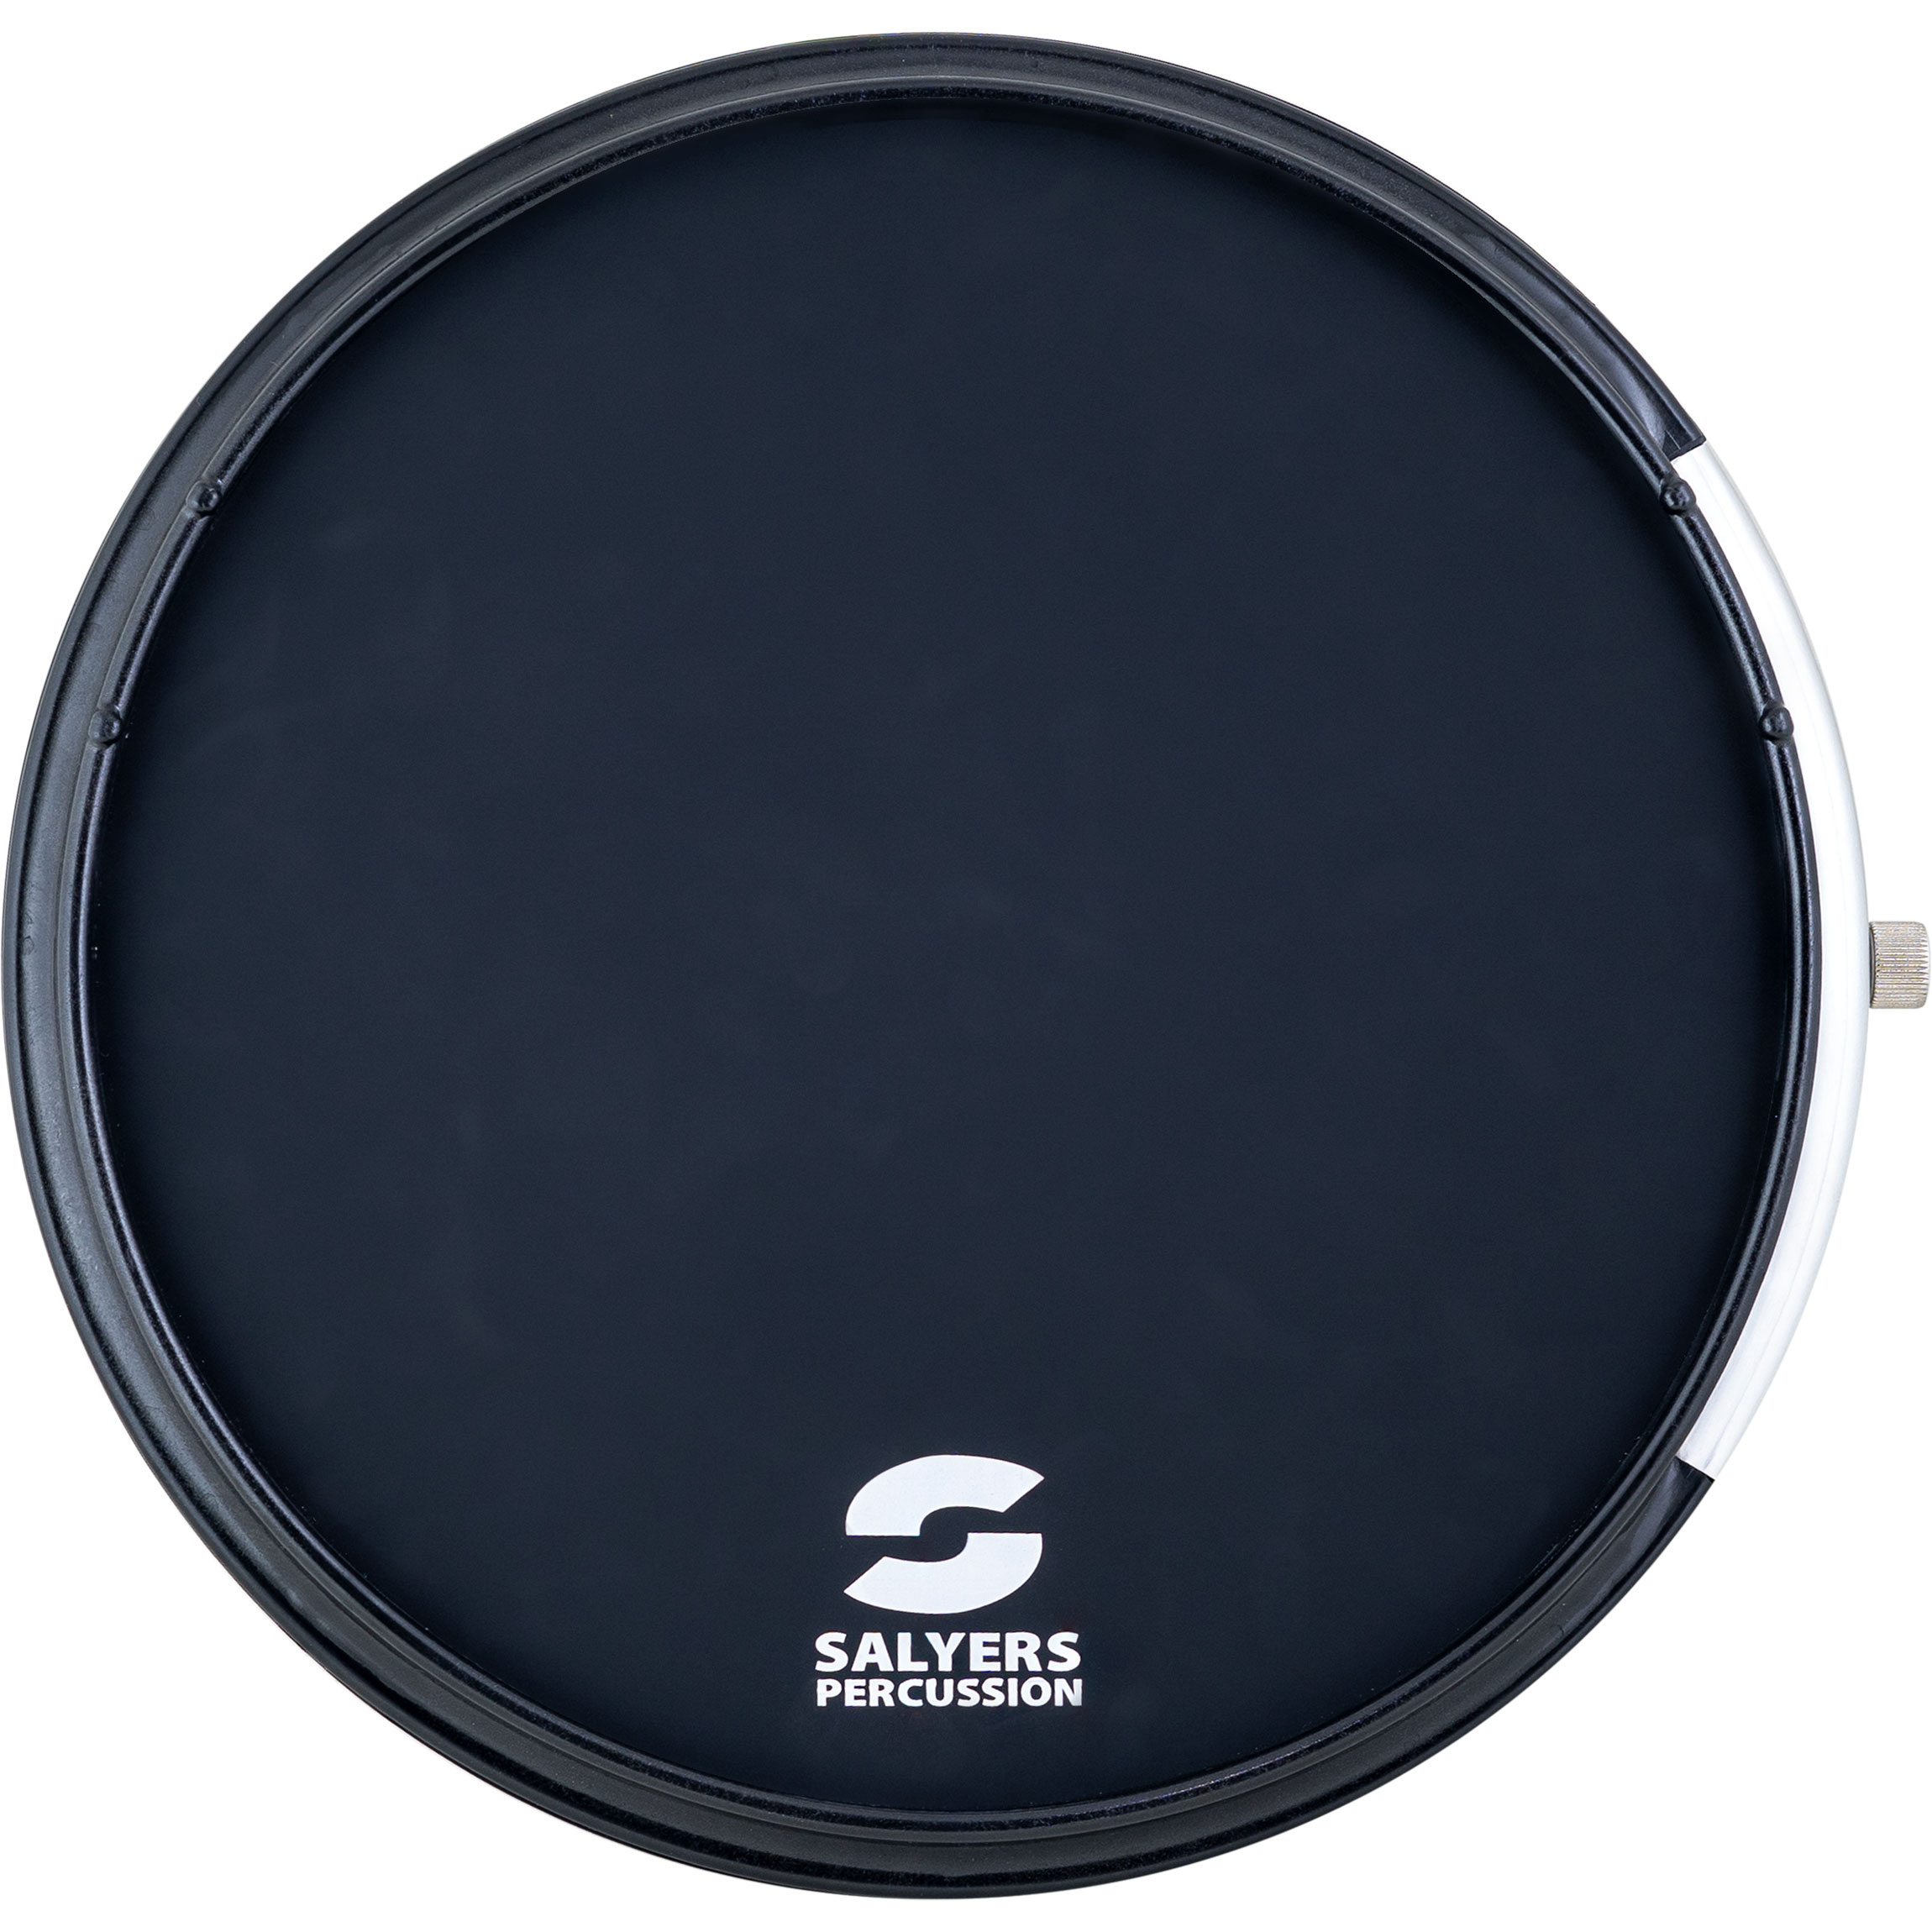 """Salyers Percussion 12"""" Stealth Pad Practice Pad with Rim and Snare Sound Insert"""